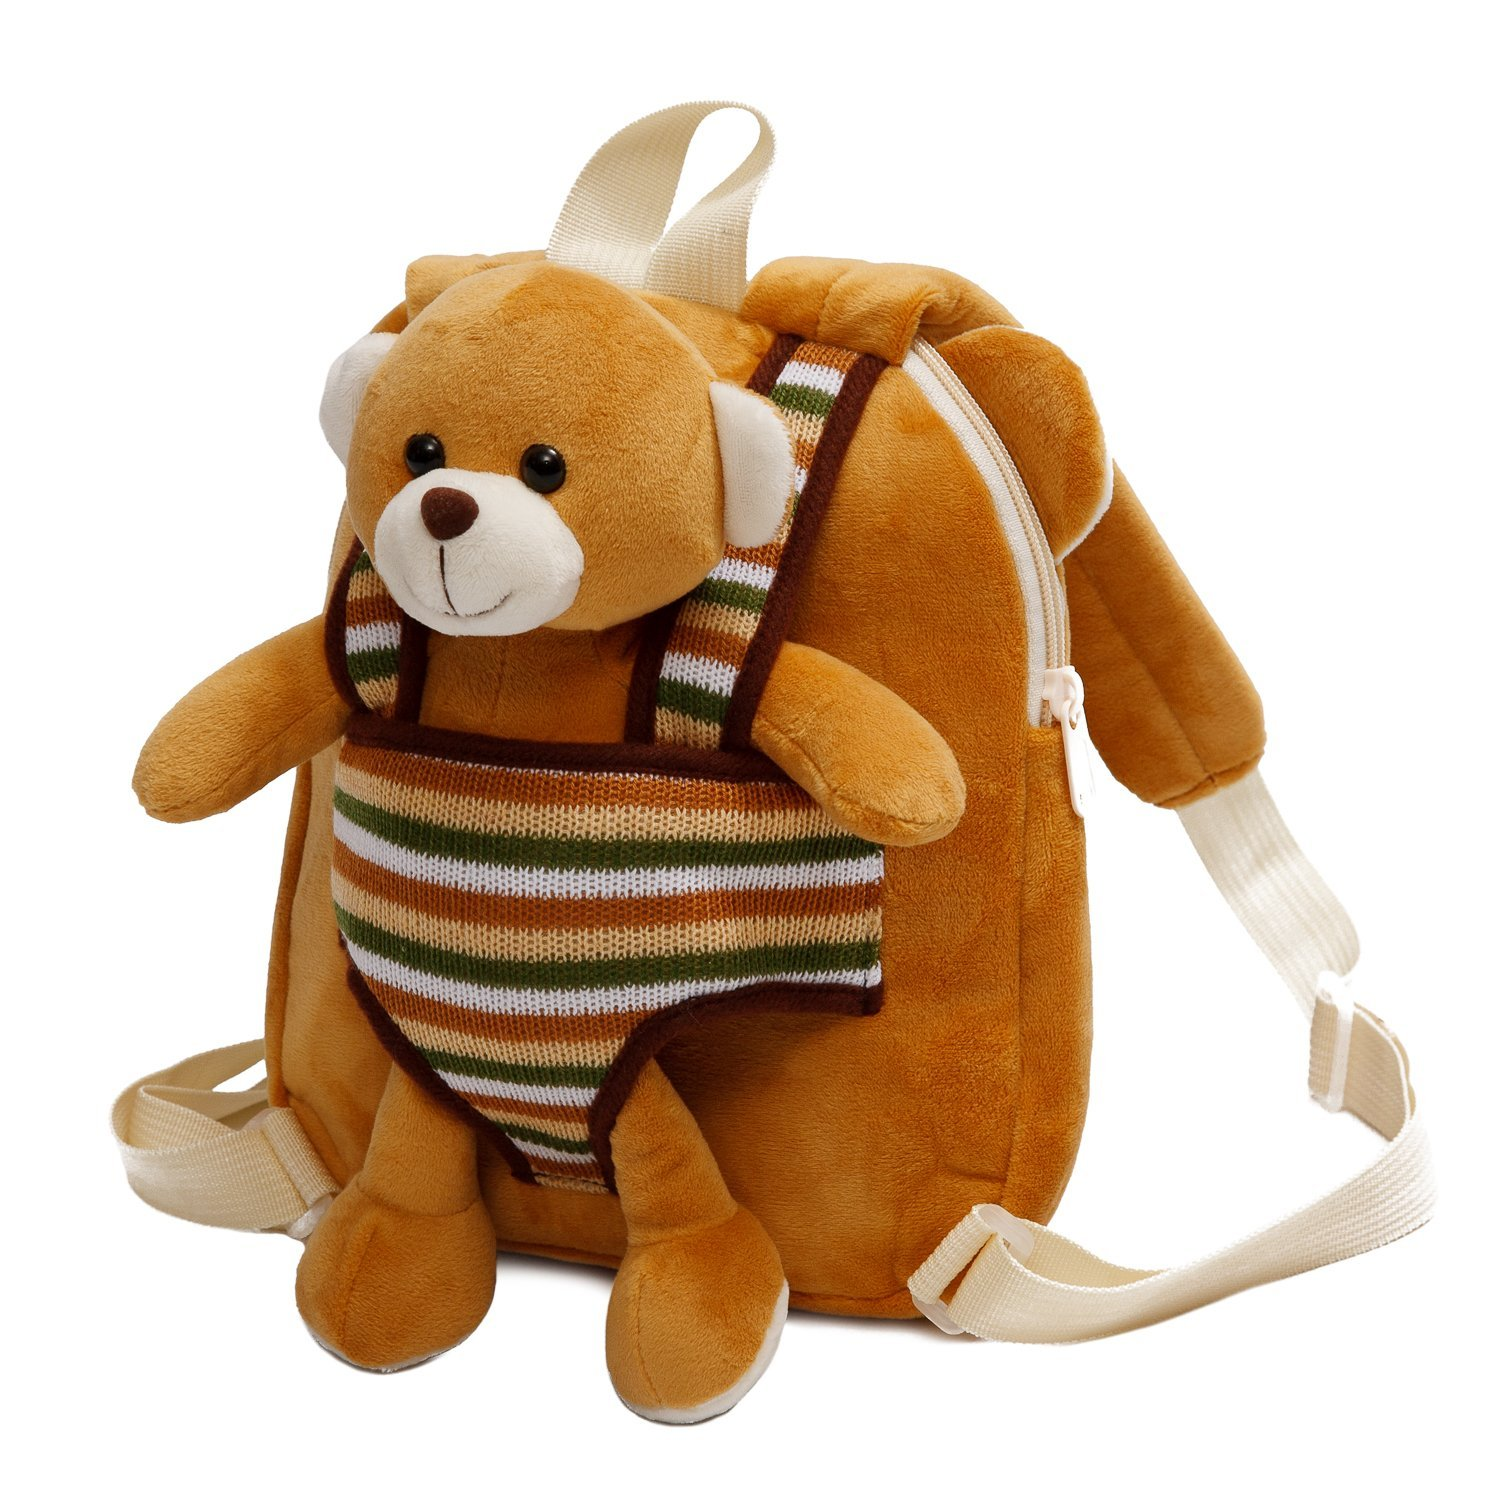 Cute Toy Toddler Backpack – Kids Stuffed Animal Toy Backpack – Kids Backpacks for Boys and Girls with Plush Toy (Brown Teddy Bear)